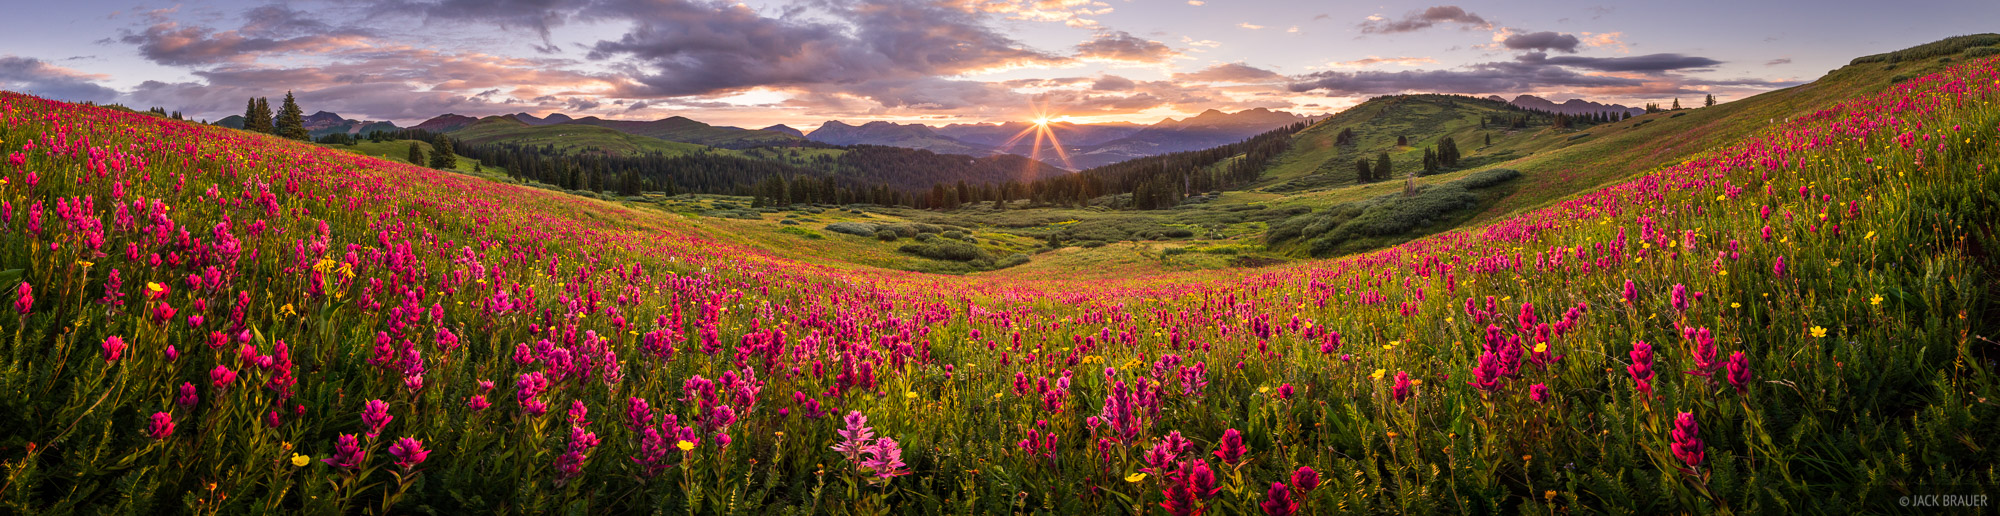 Colorado,Engineer Mountain,San Juan Mountains,wildflowers, panorama, sunrise, photo